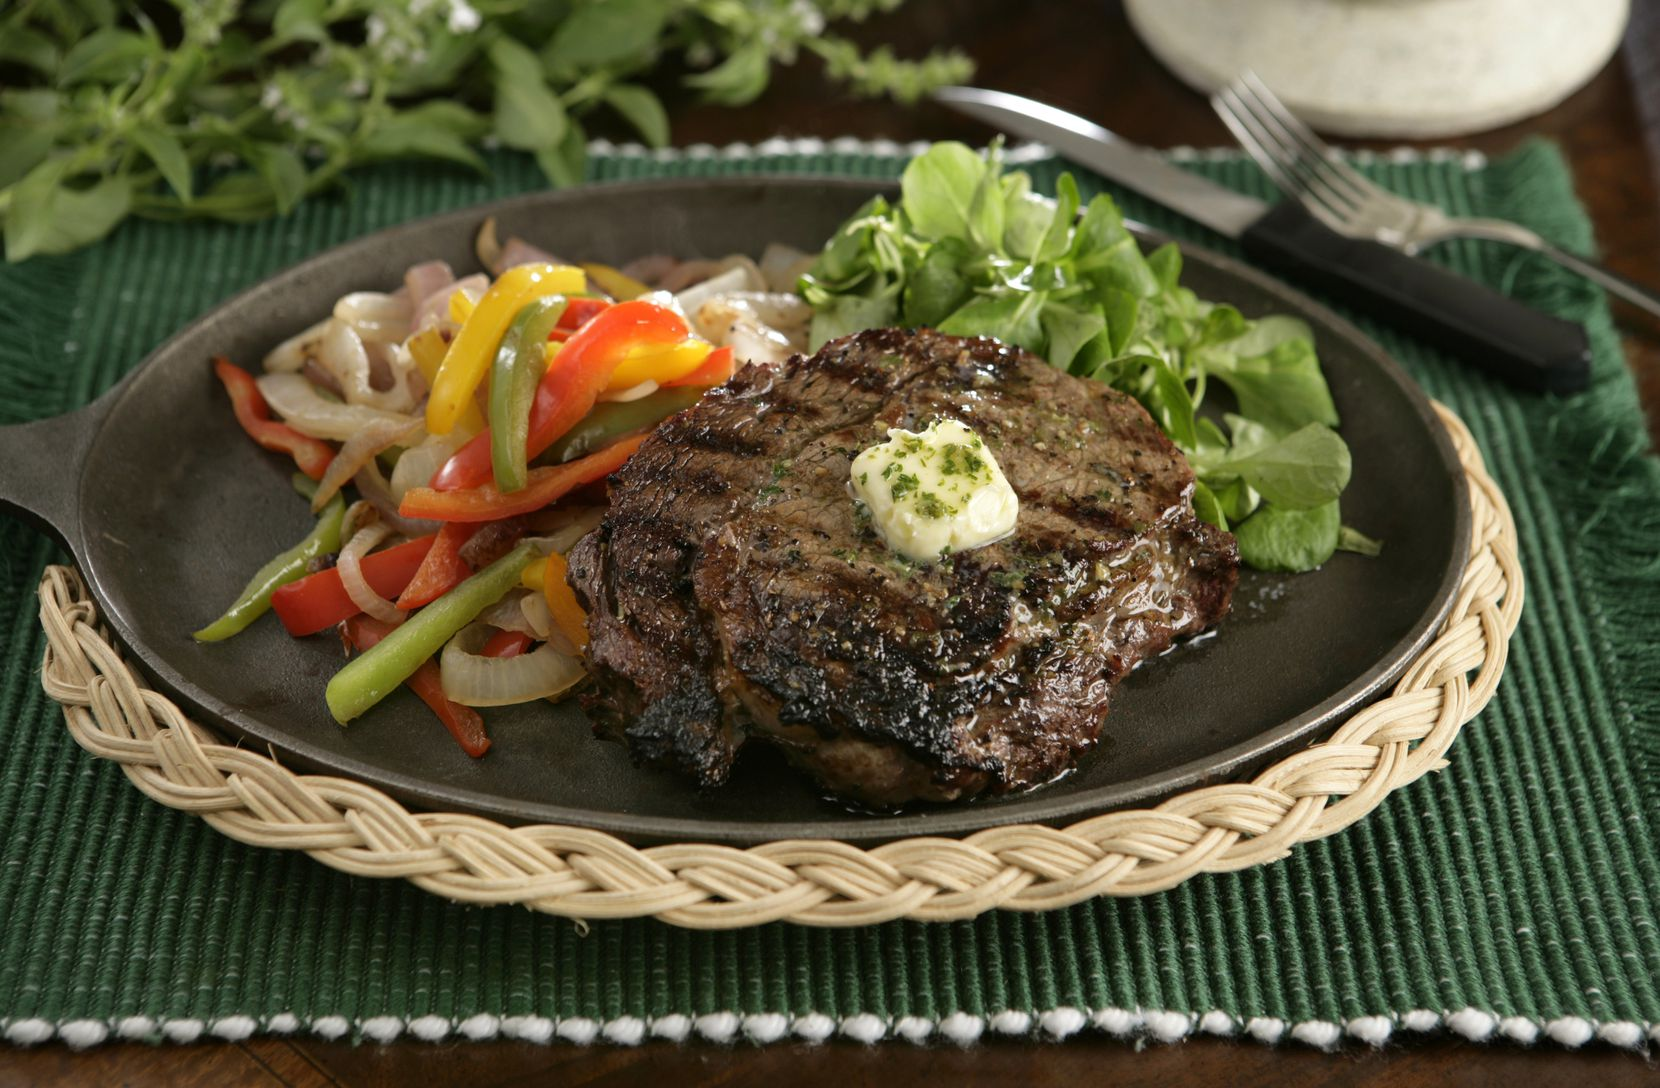 A beautifully grilled ribeye steak.